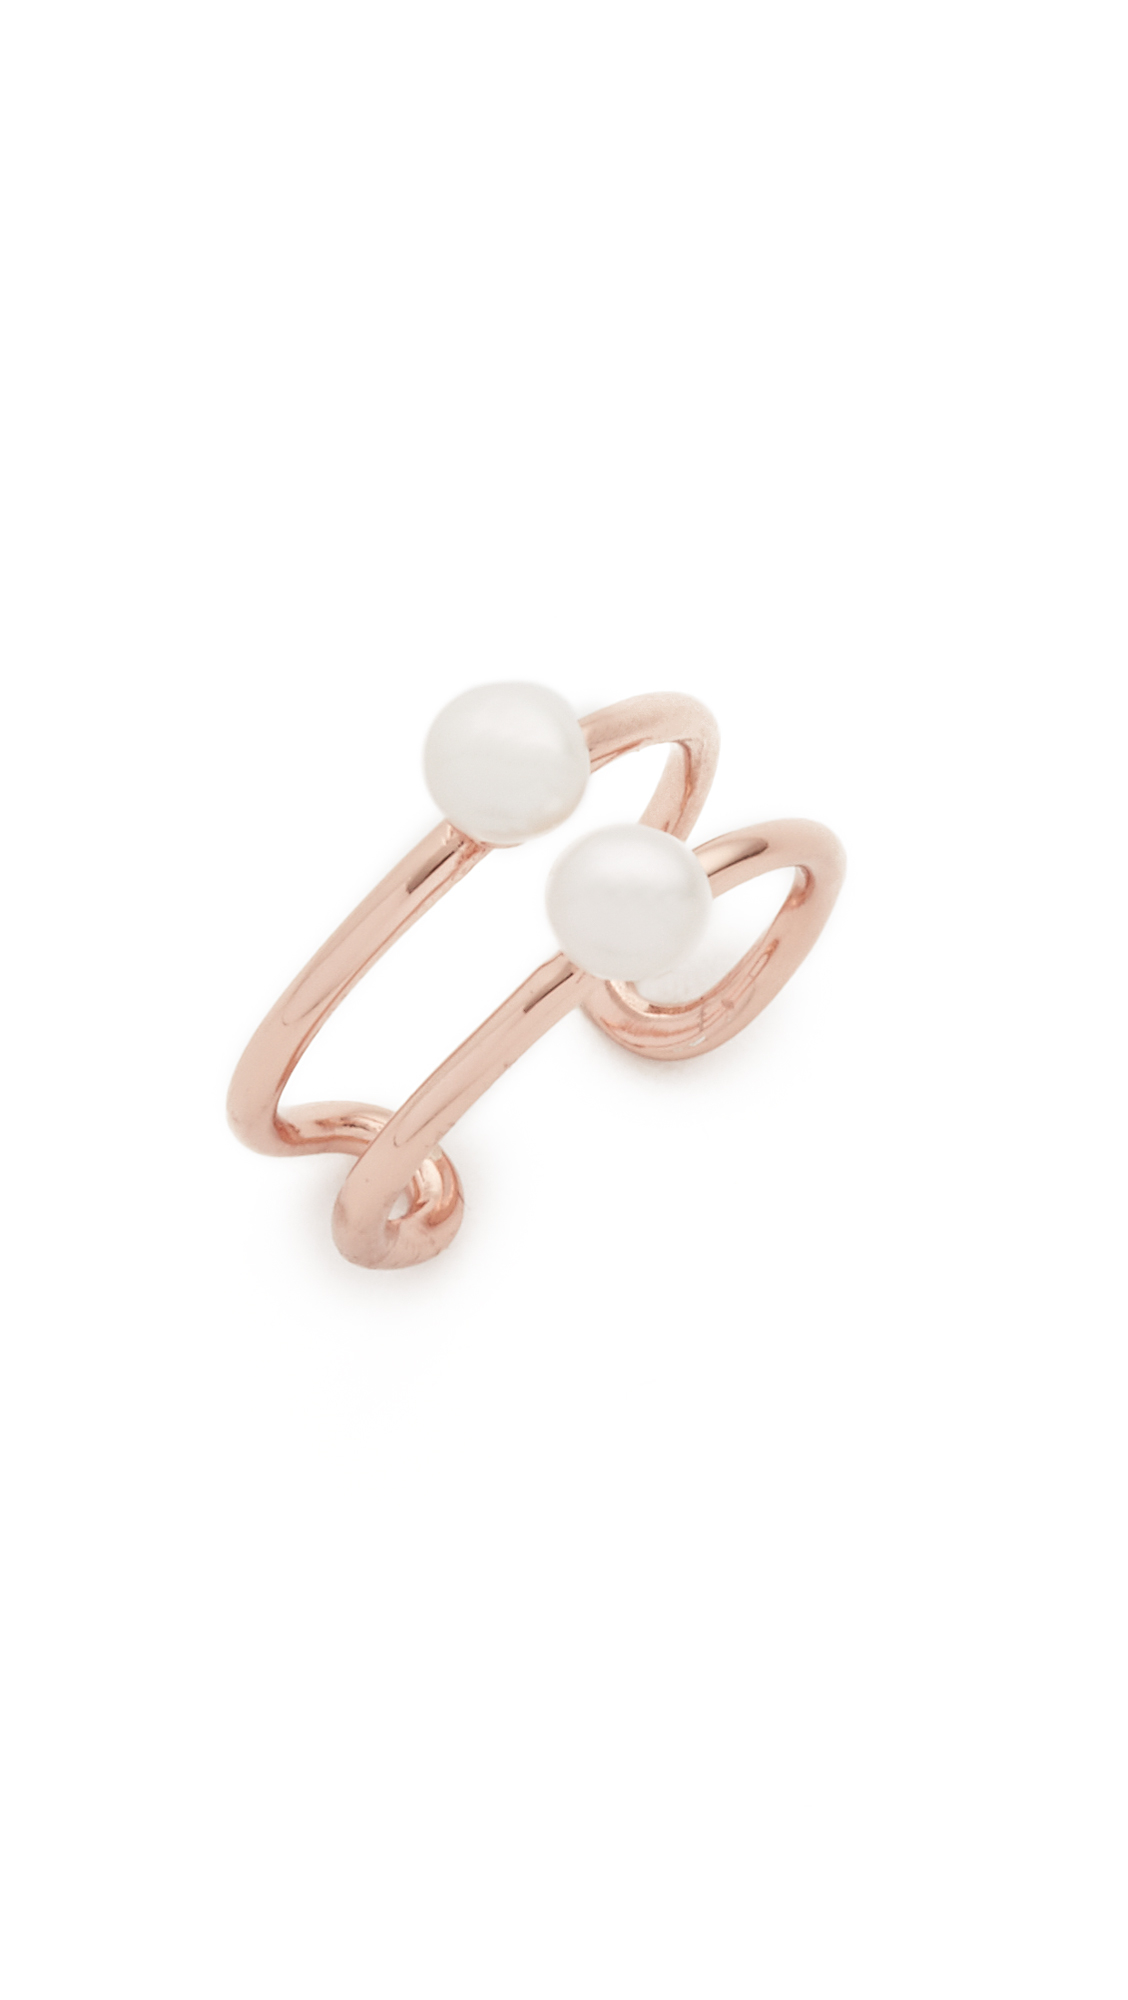 Samantha Wills Jasmine & Fleetwood Ring - Rose Gold/pearl in Pink